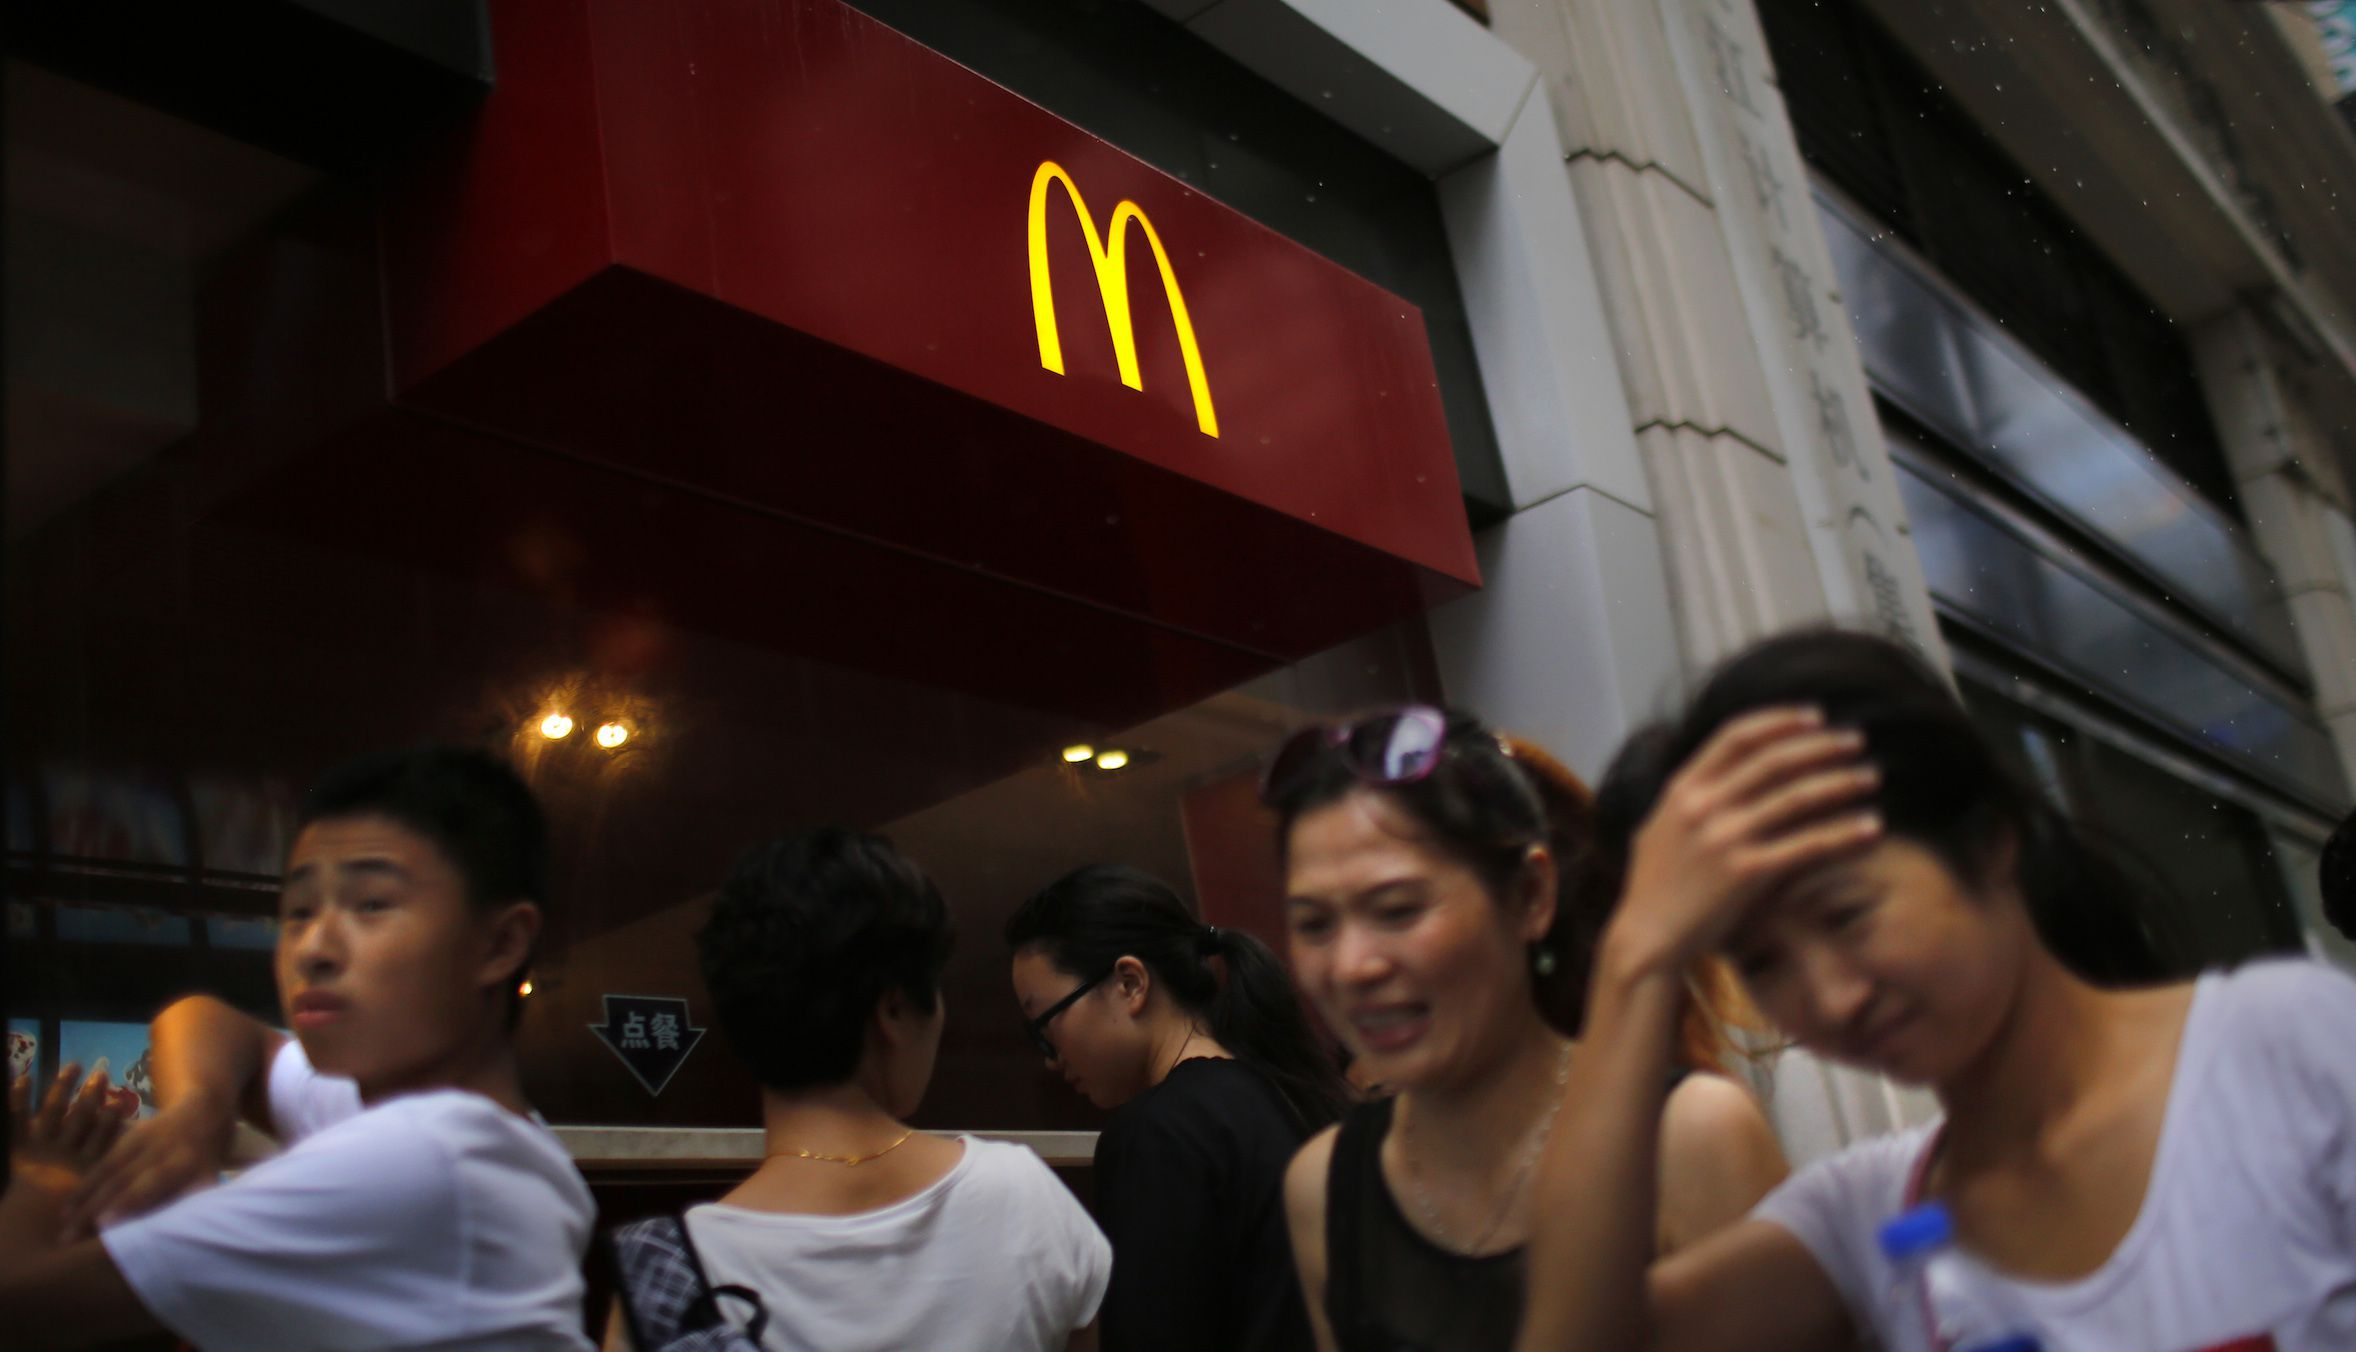 """People walk by a McDonald's store in downtown Shanghai July 31, 2014. A food safety scare in China is testing local consumers' loyalty to foreign fast-food brands, including McDonald's Corp and Yum Brands Inc, which owns the KFC and Pizza Hut chains. Yum said on Wednesday that the scare, triggered by a TV report earlier this month showing improper meat handling by a supplier, Shanghai Husi Food, caused """"significant, negative"""" damage to sales at KFC and Pizza Hut restaurants over the past 10 days. """"If the significant sales impact is sustained, it will have a material effect on full-year earnings per share,"""" Yum said in a regulatory filing.  REUTERS/ Carlos Barria  (CHINA - Tags: BUSINESS FOOD HEALTH) - RTR40RF0"""